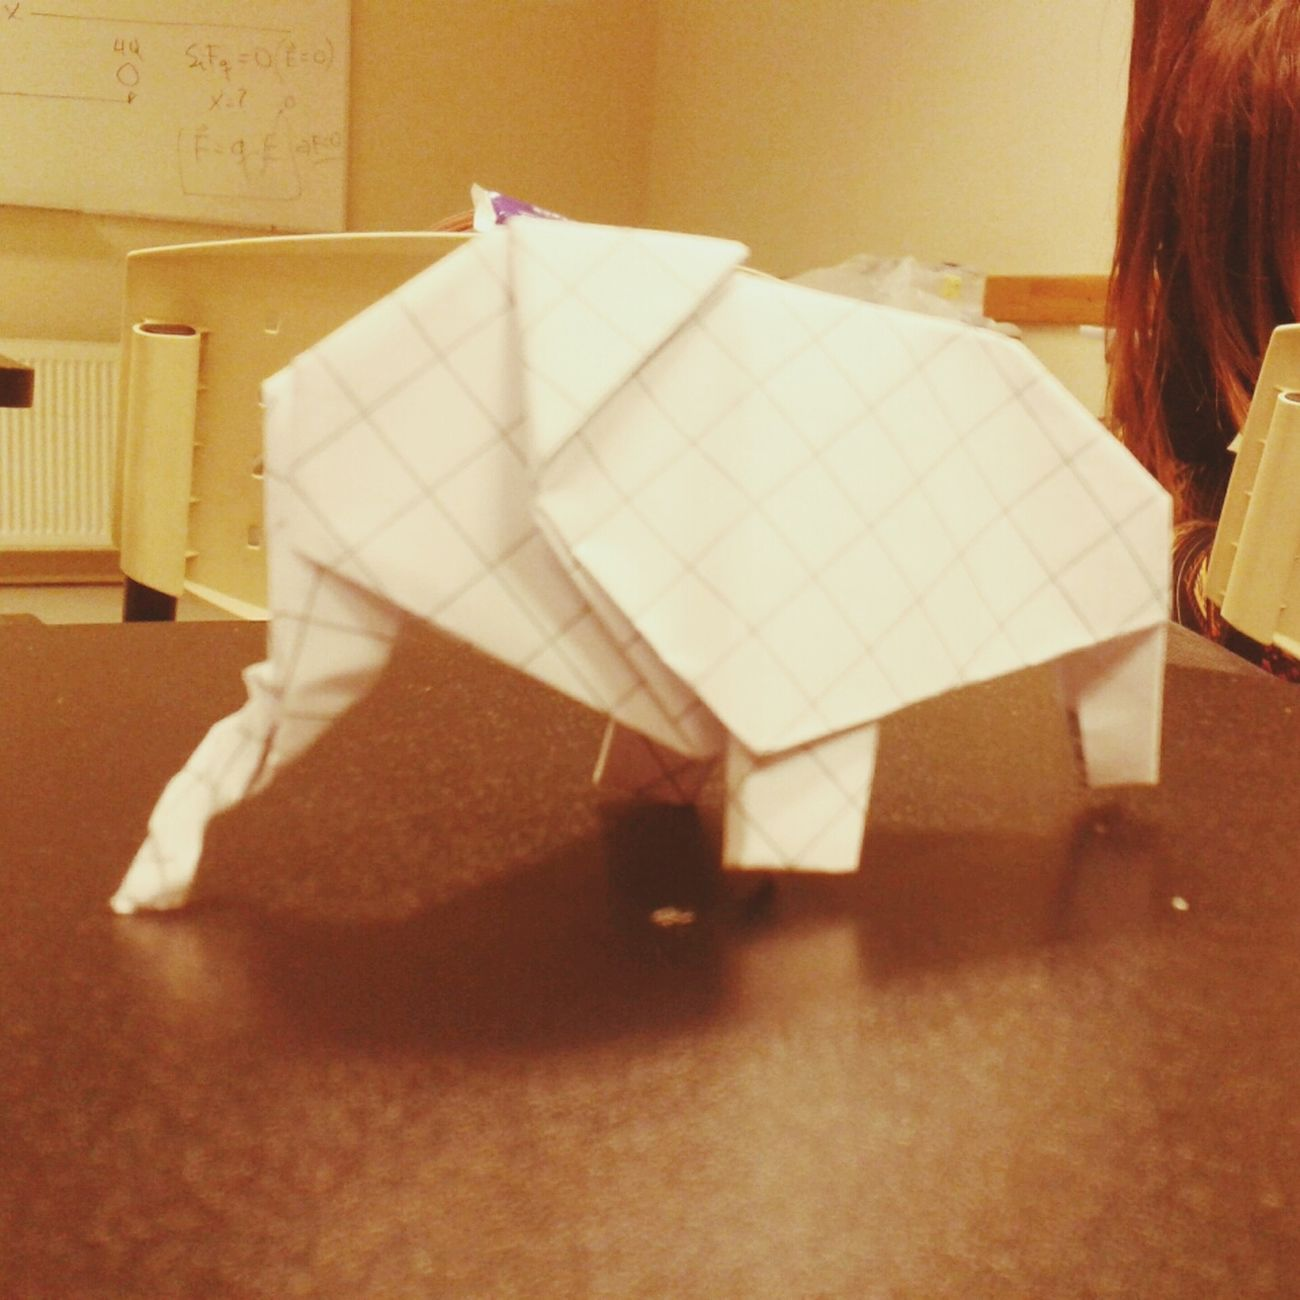 bored in class Origami Art College